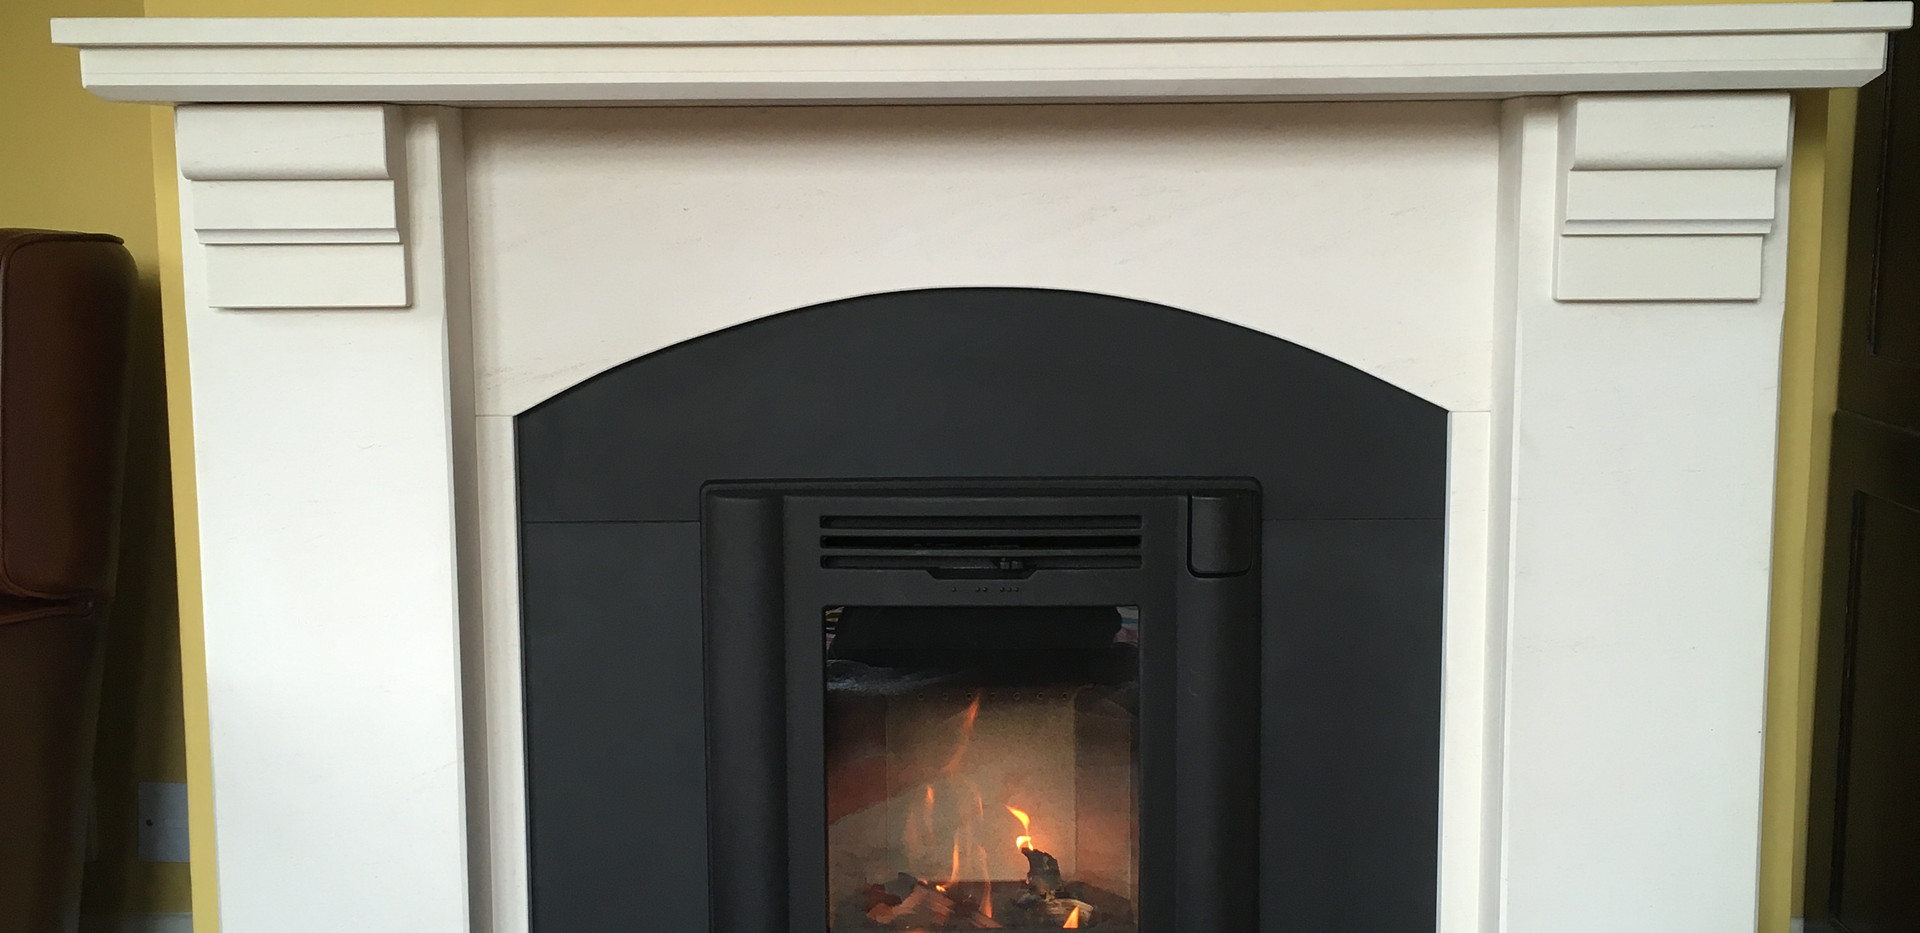 Contura i4 traditional stove and new slate / limestone fireplace